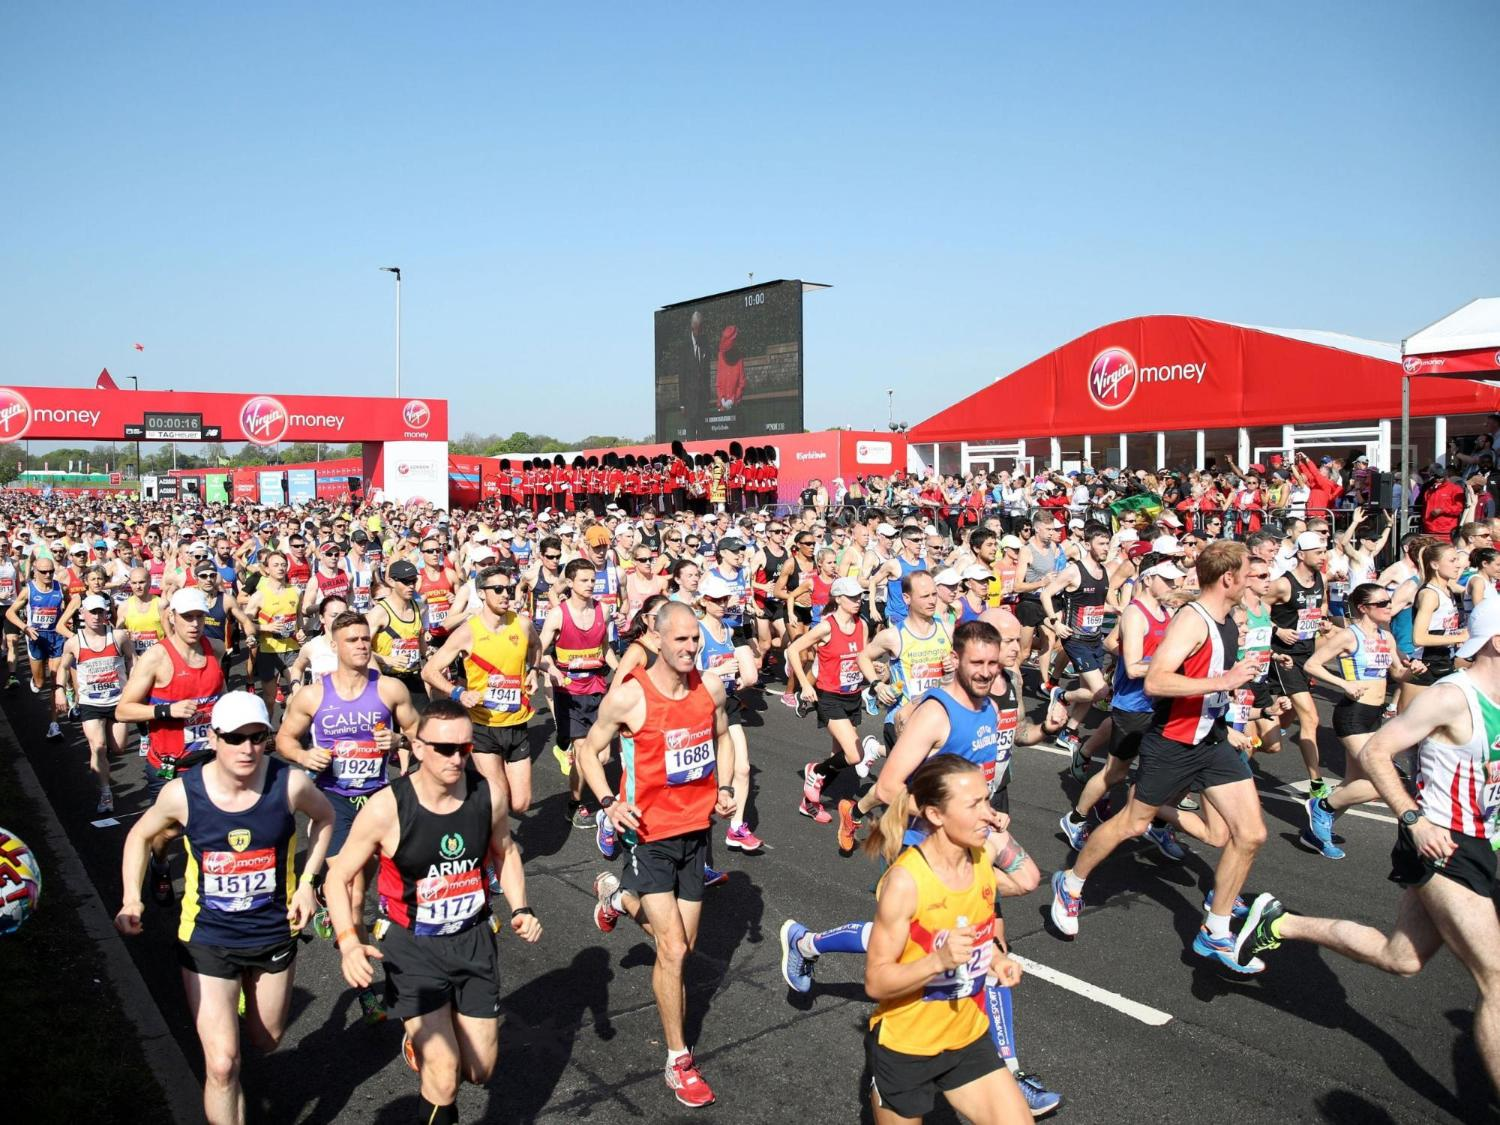 Man jailed after taking lost London marathon race number and claiming finisher's medal https://t.co/Y3Ts0DsmpH https://t.co/jpngd0hZGY